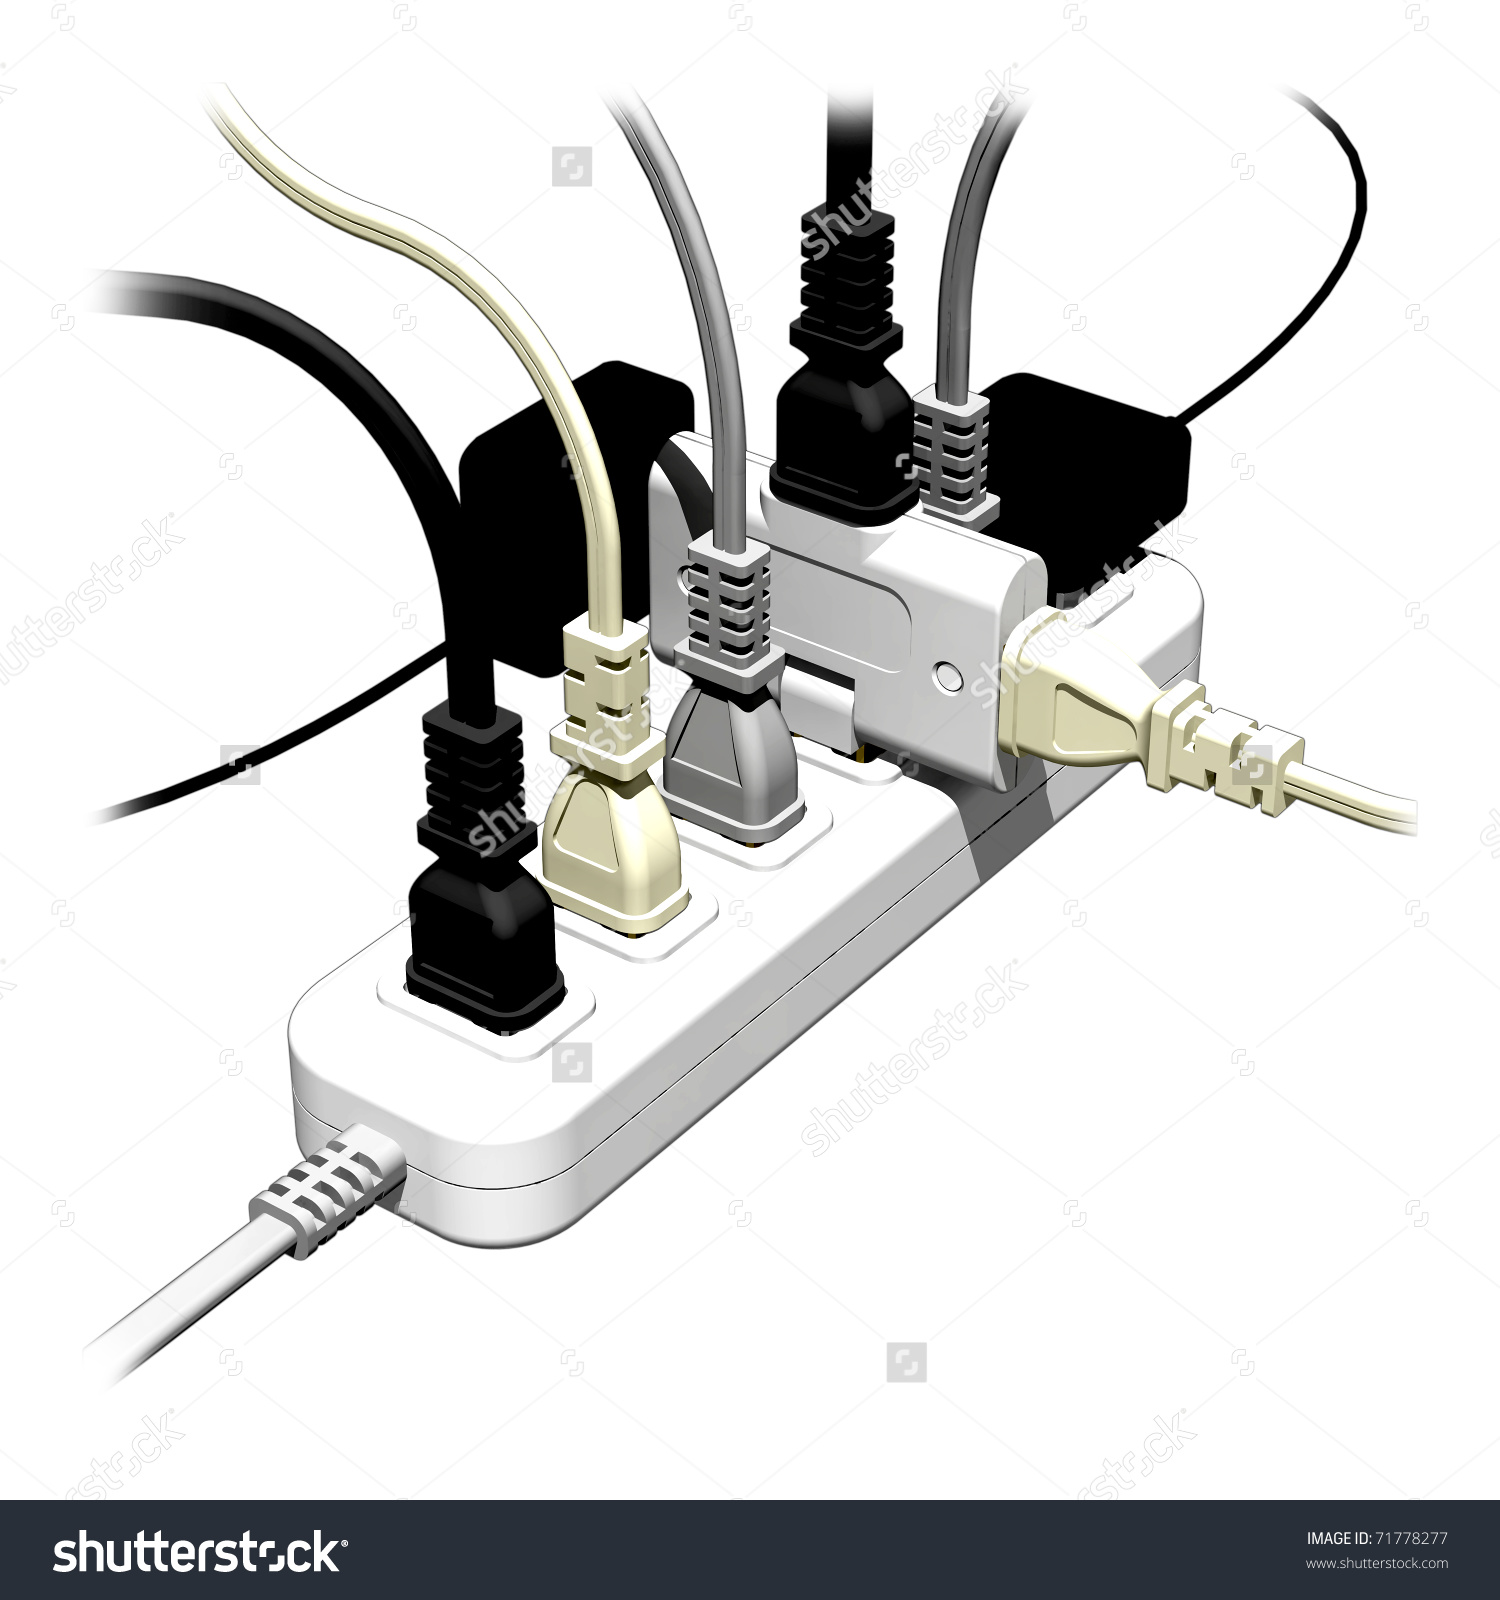 z wiring clipart 20 free cliparts download images on